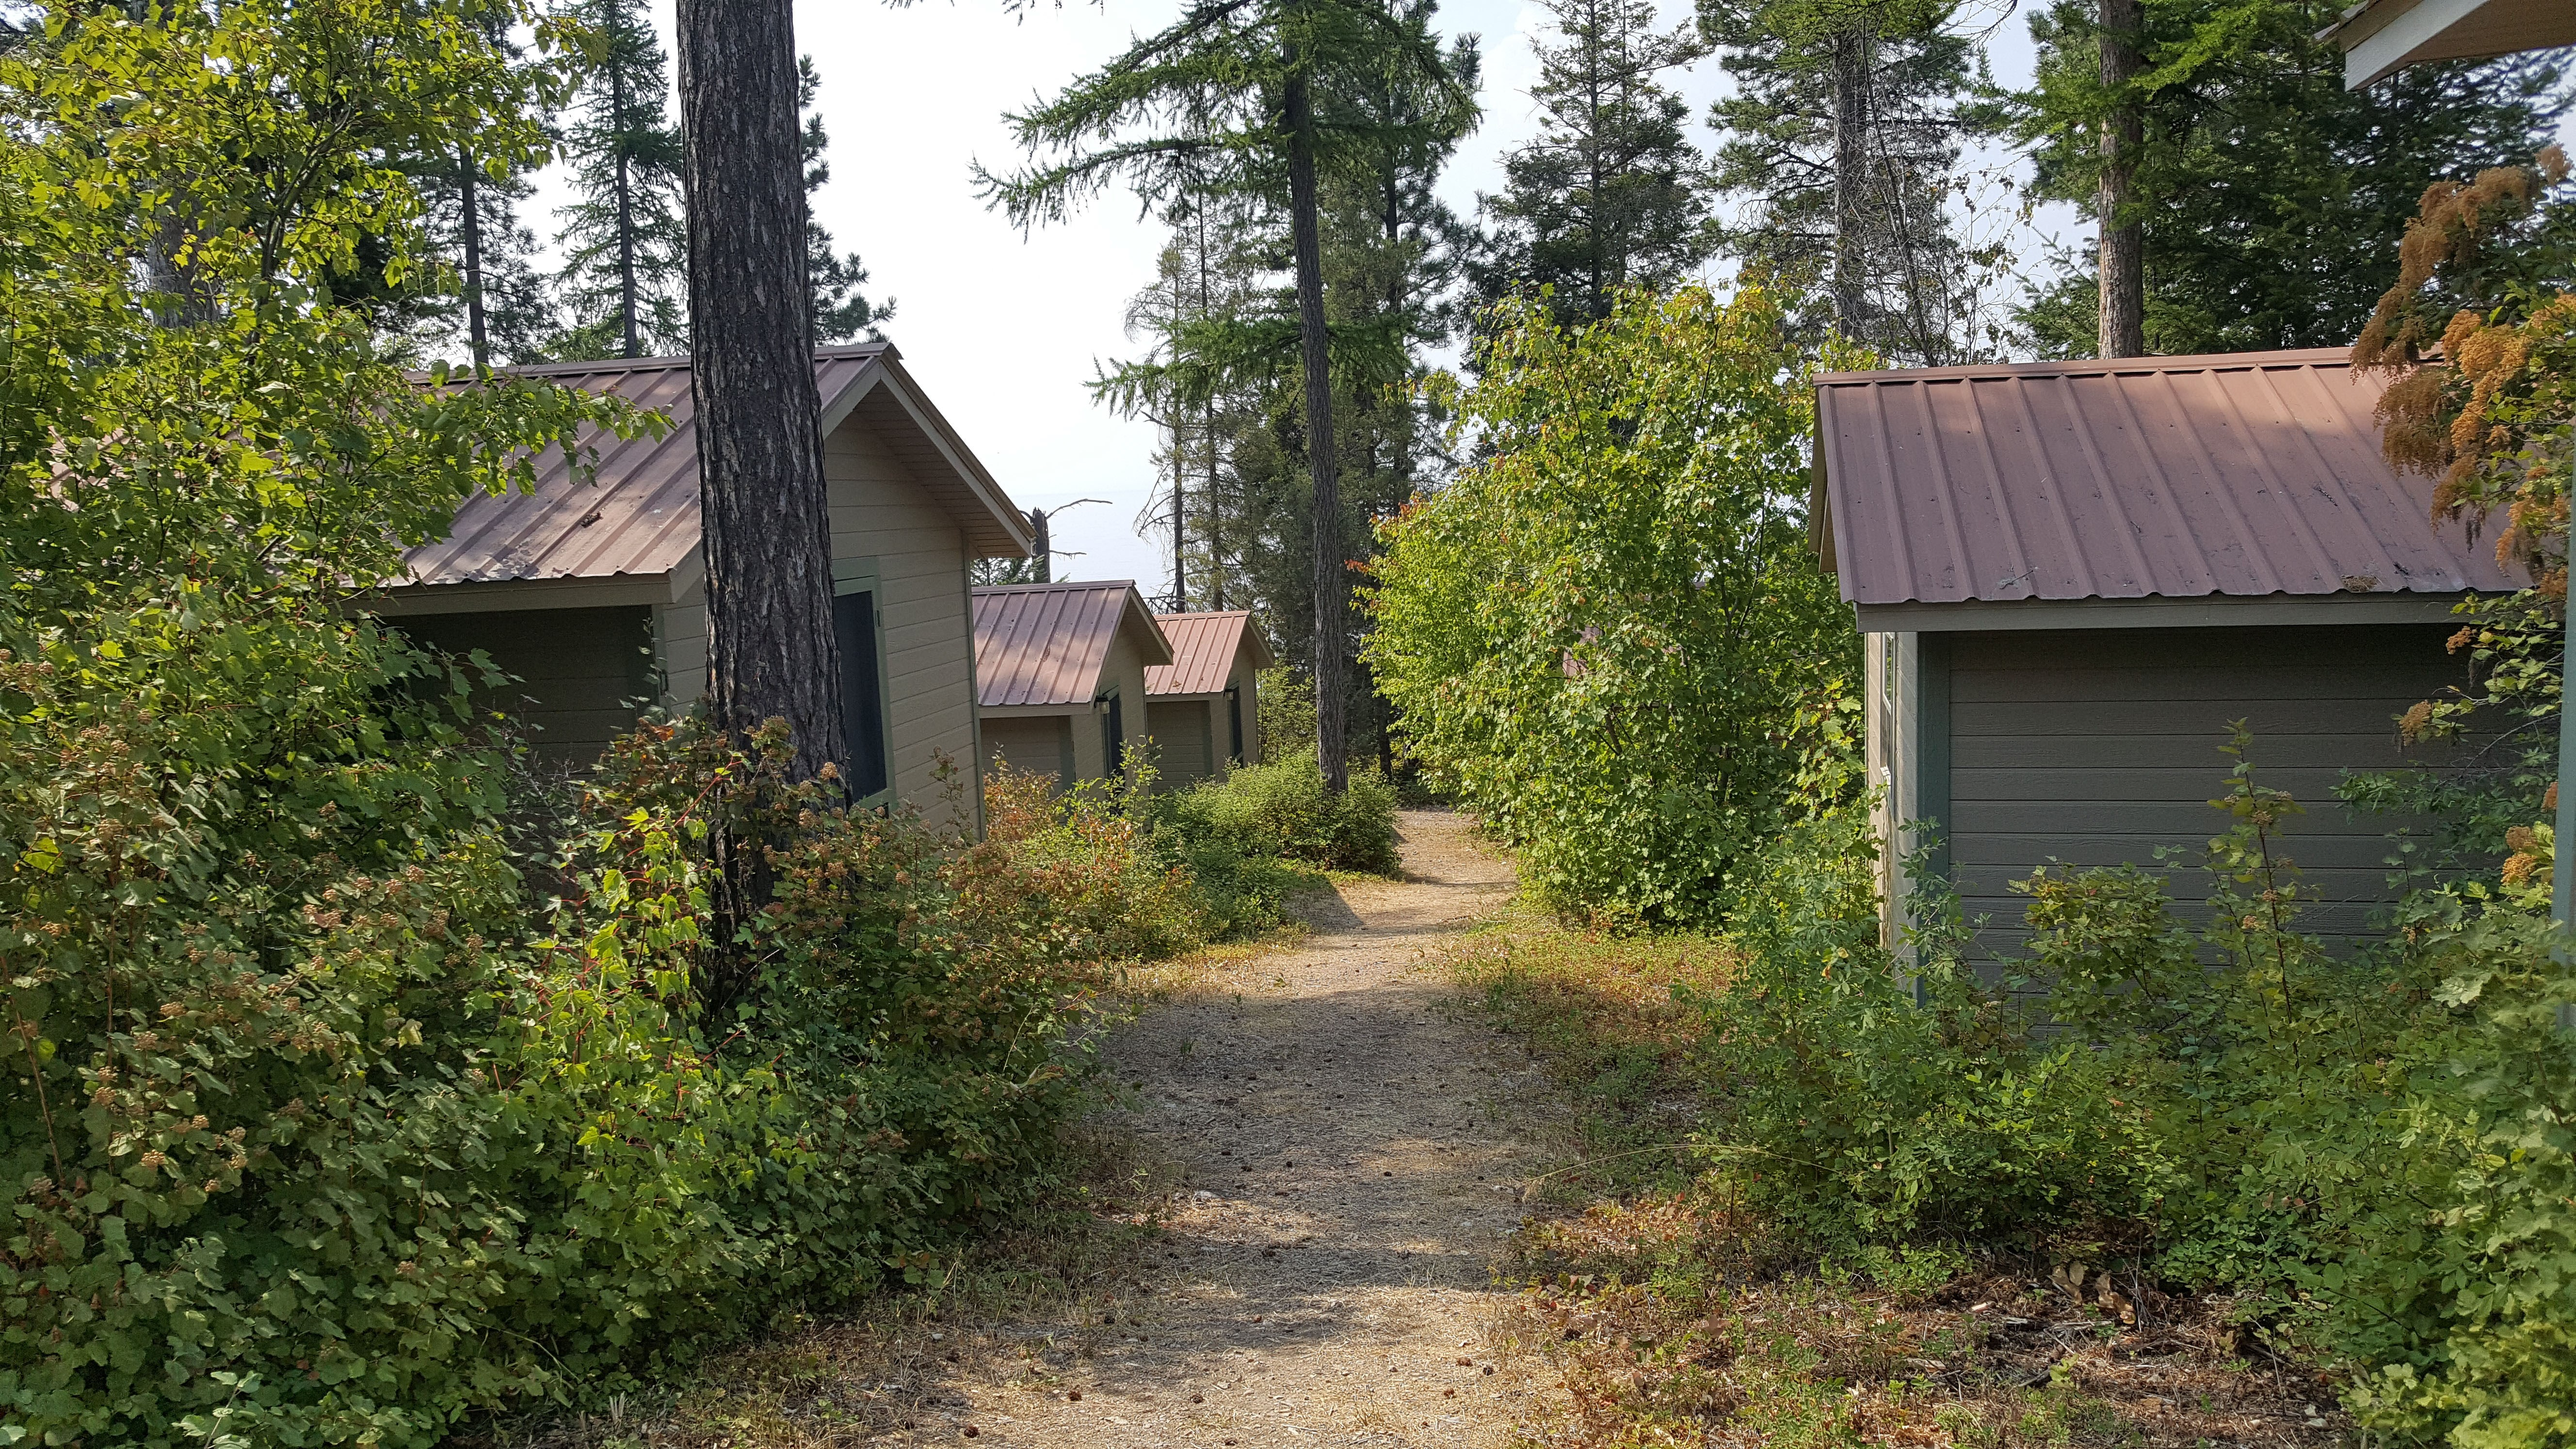 View of walking path between lakeshore cabins